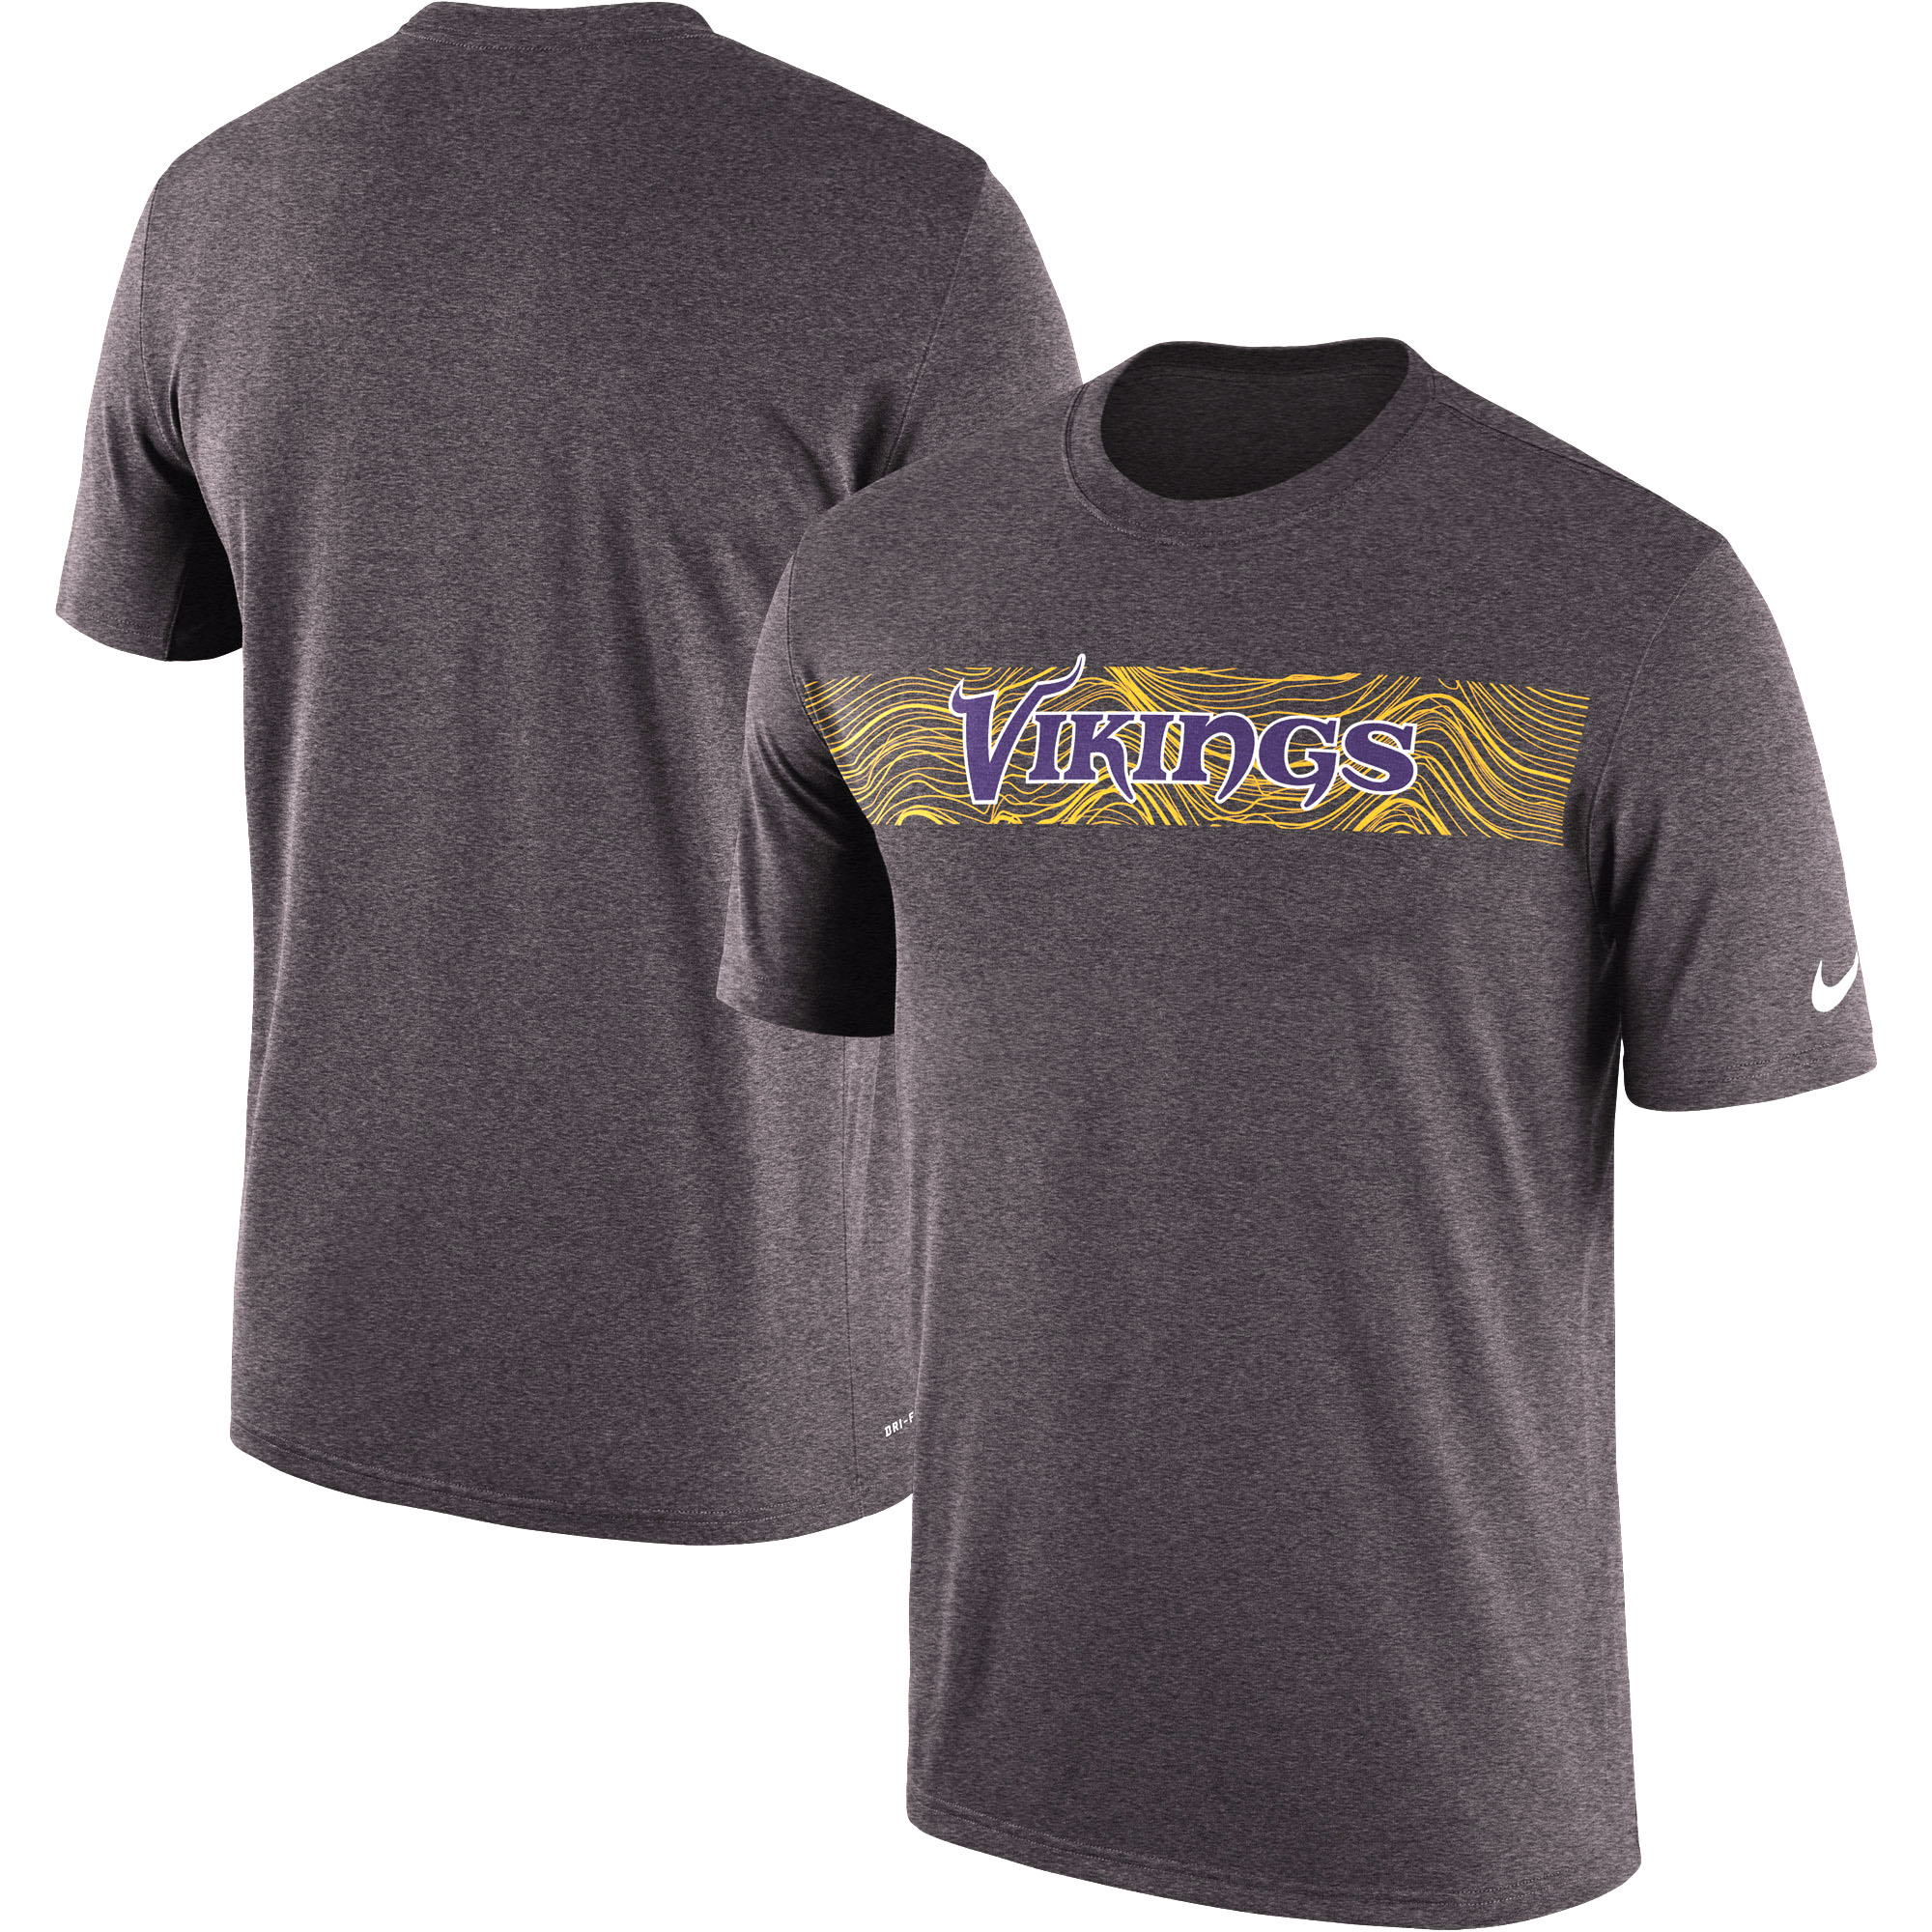 Minnesota Vikings Nike Sideline Seismic Legend Performance T-Shirt - Heathered Charcoal